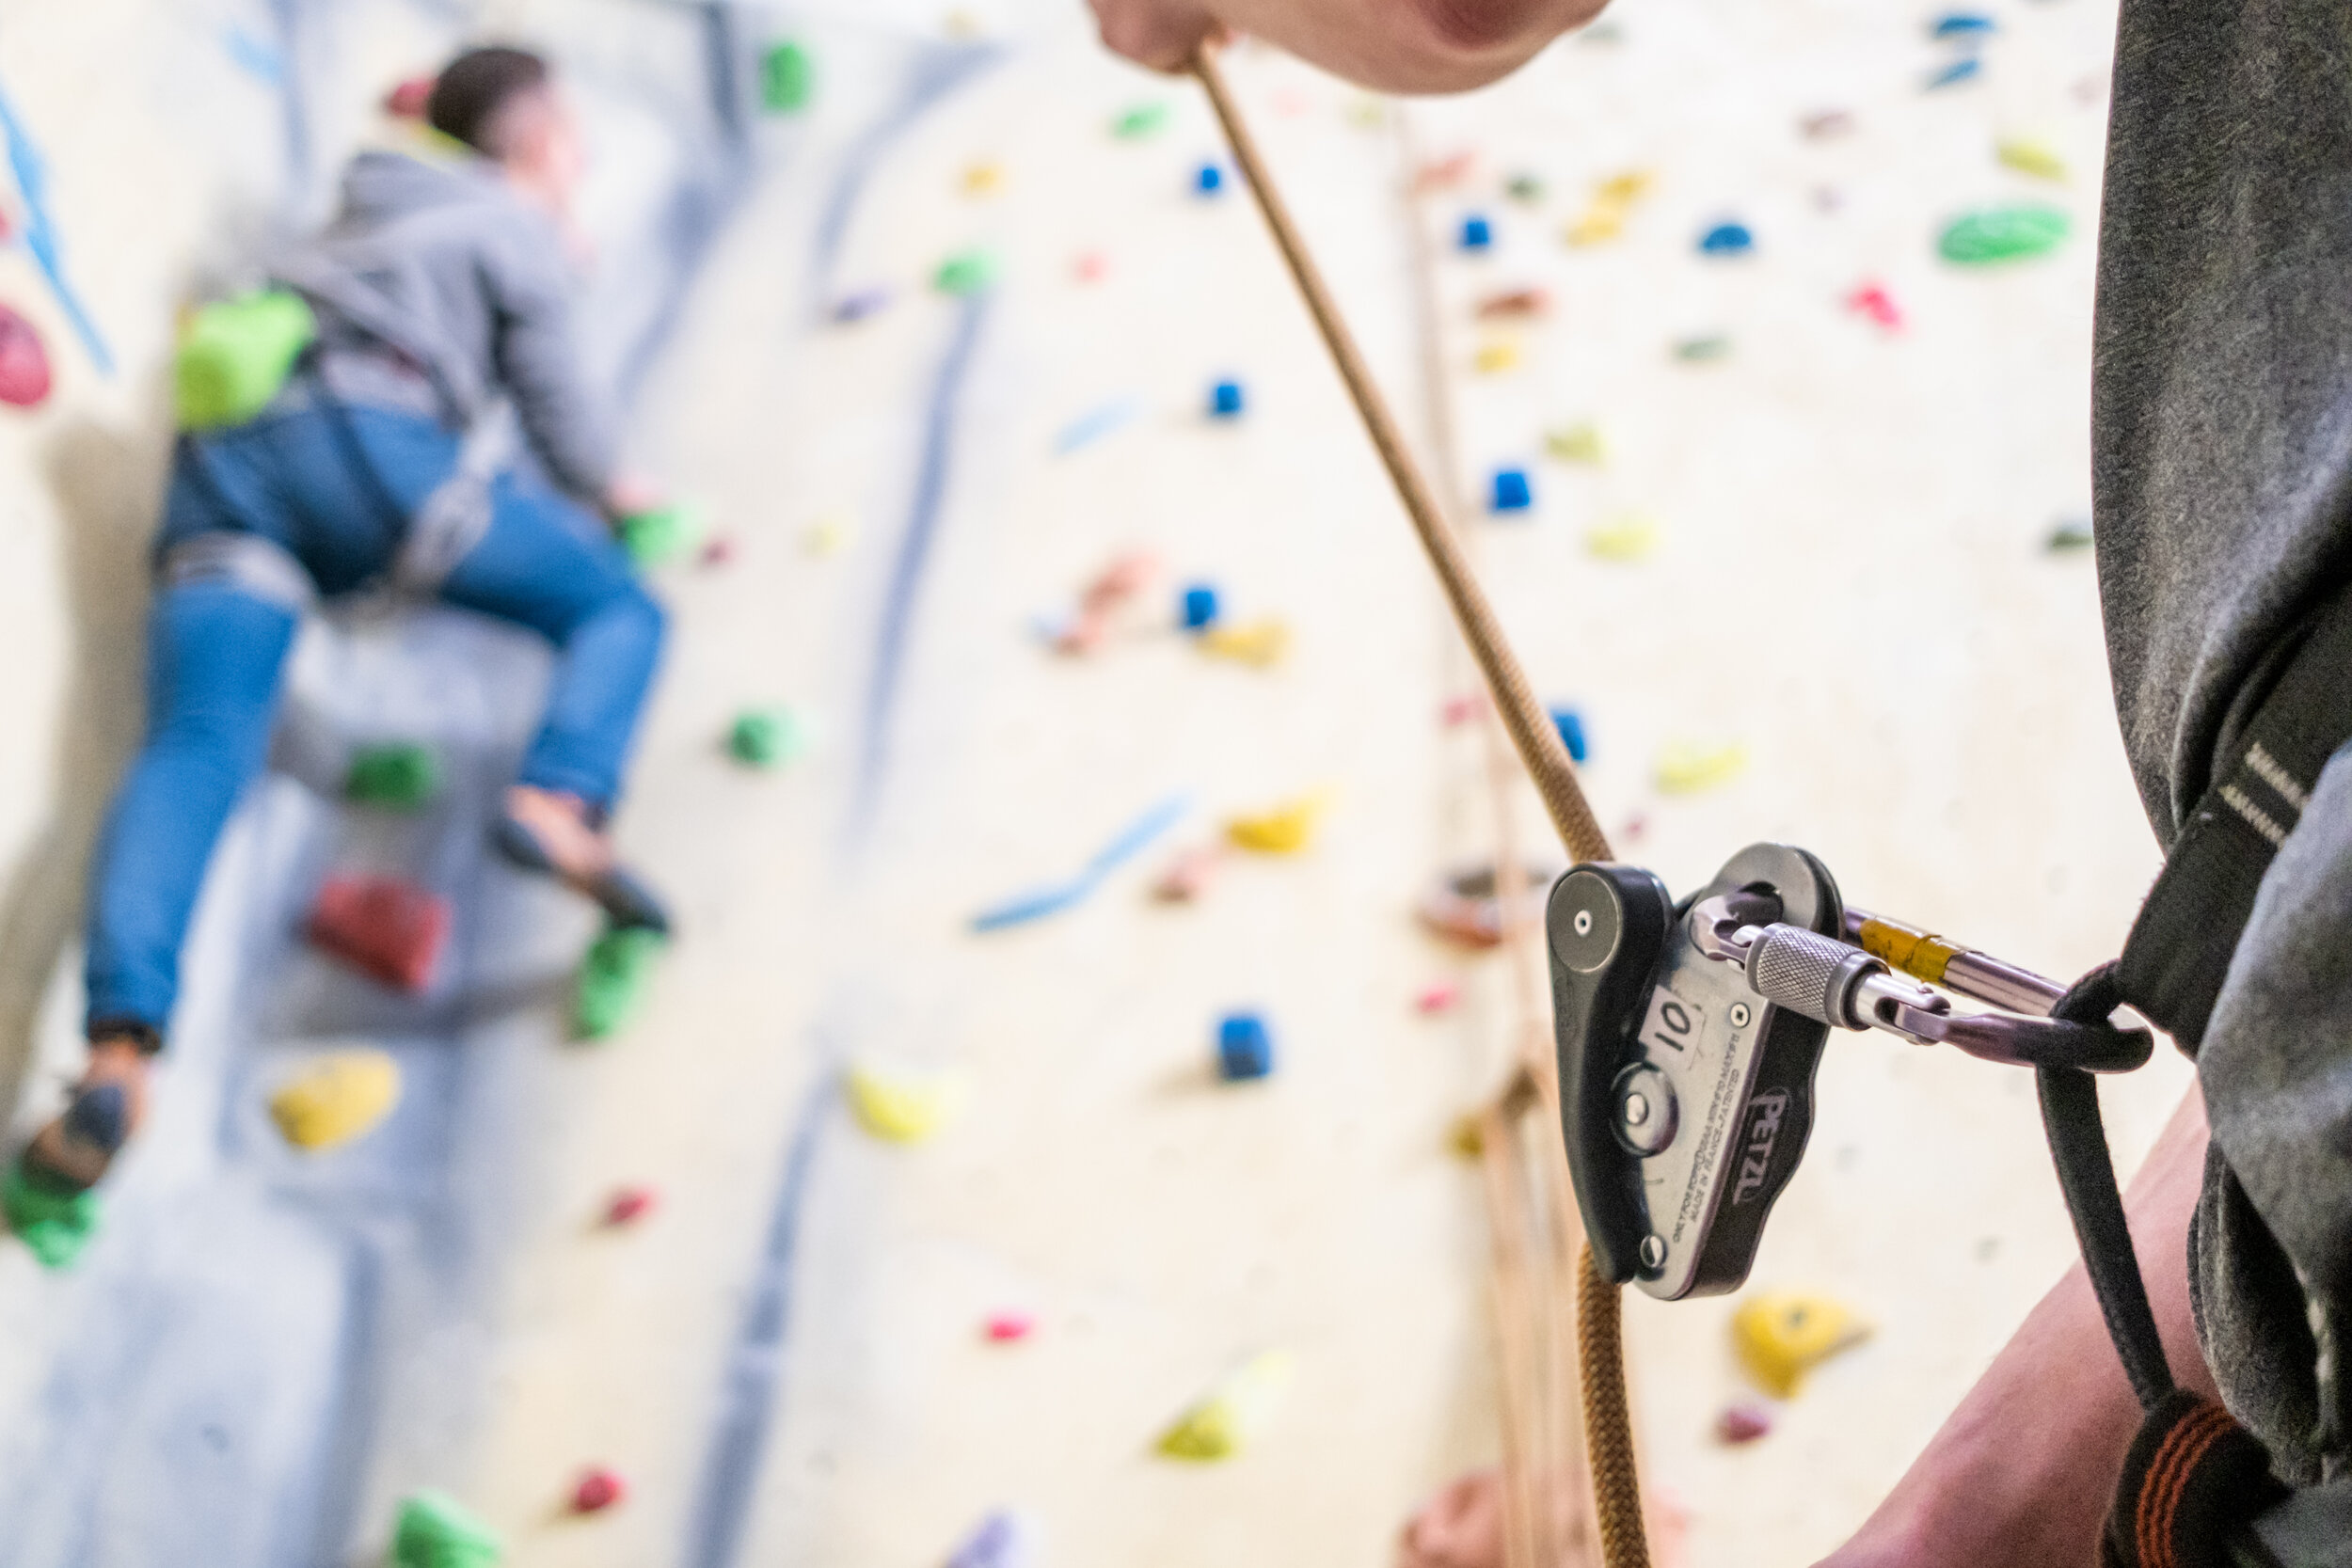 Want to learn the ropes? - Take a look at our Beginners course. This course is designed for people who are new to the sport and want to learn the skills required to safely use the top rope and Bouldering areas of the wall.